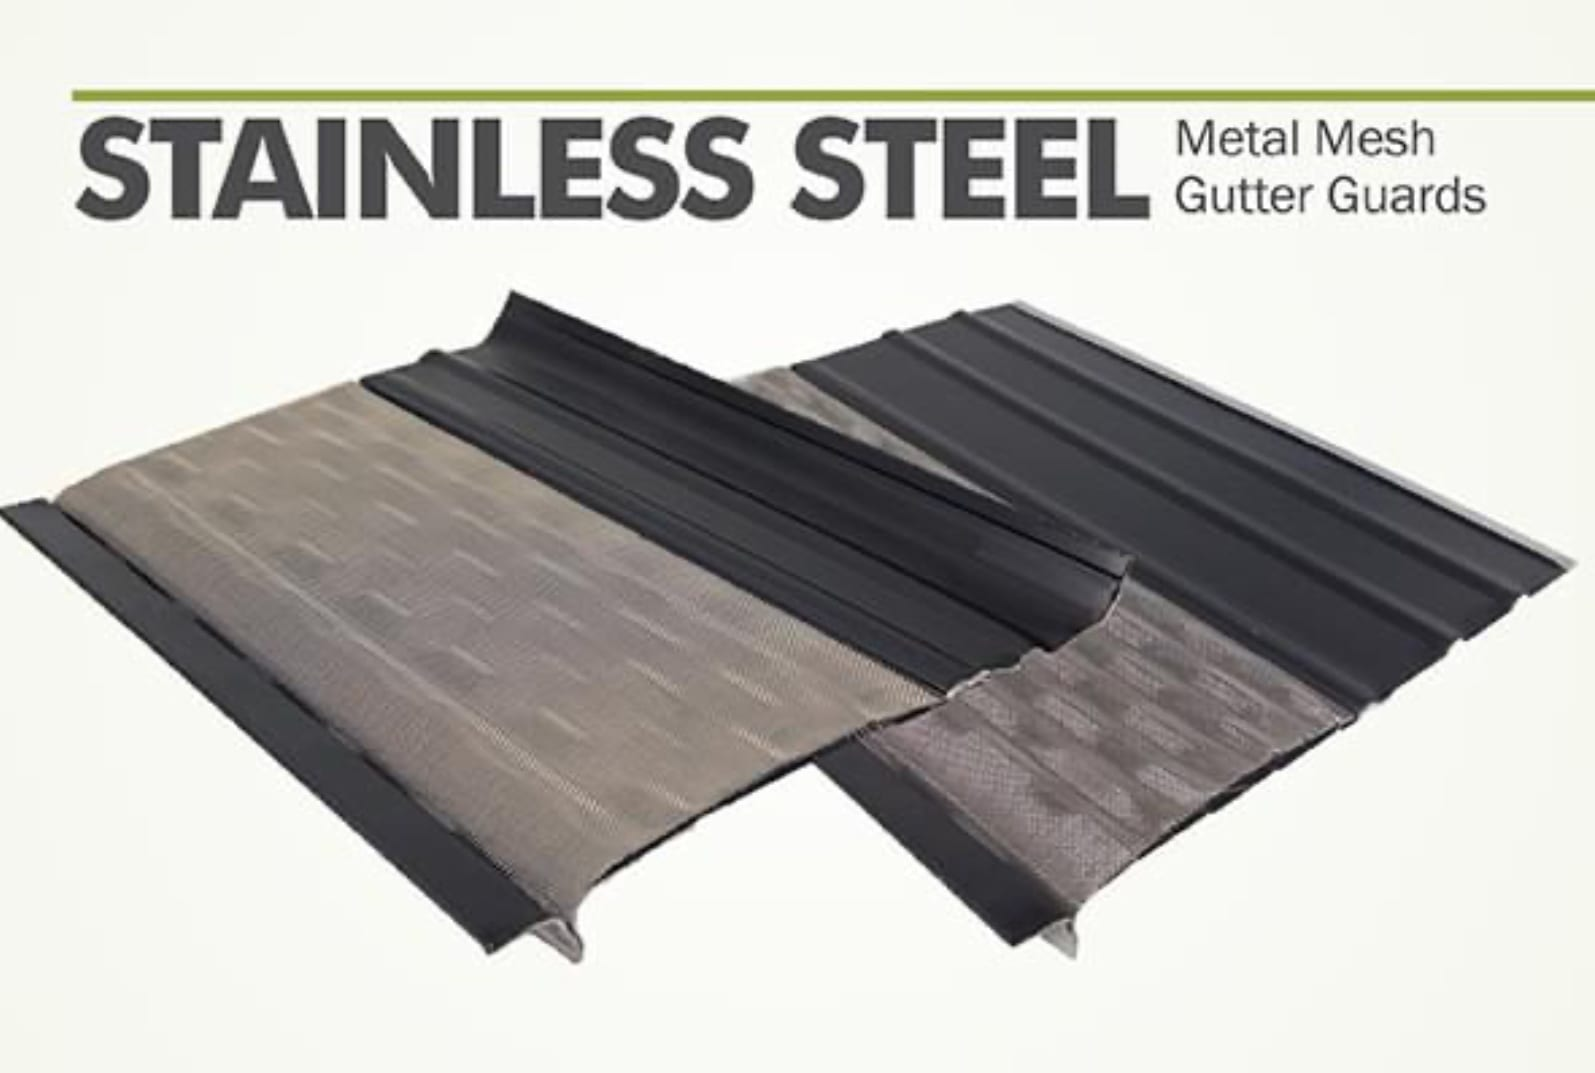 Stainless Steel Leaf Guards